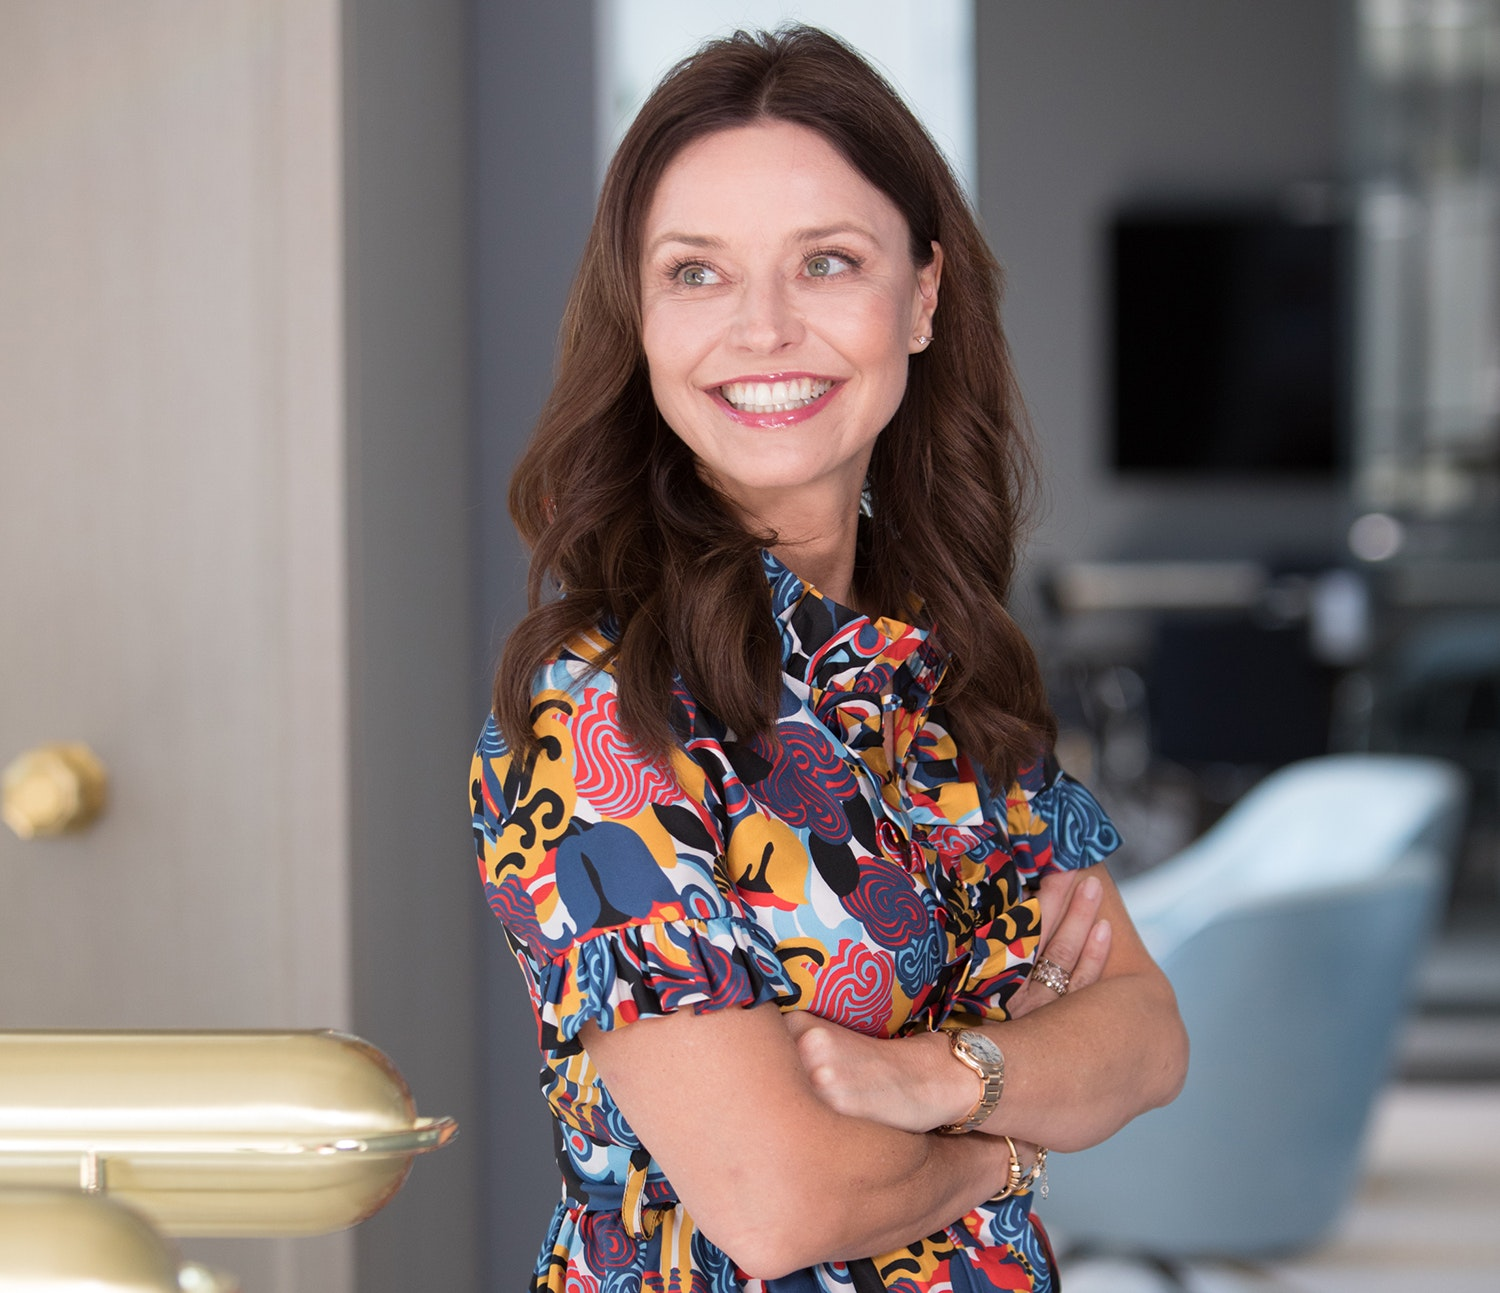 Kirsten Green, Founder of Forerunner Ventures, On Non-Negotiable Skincare